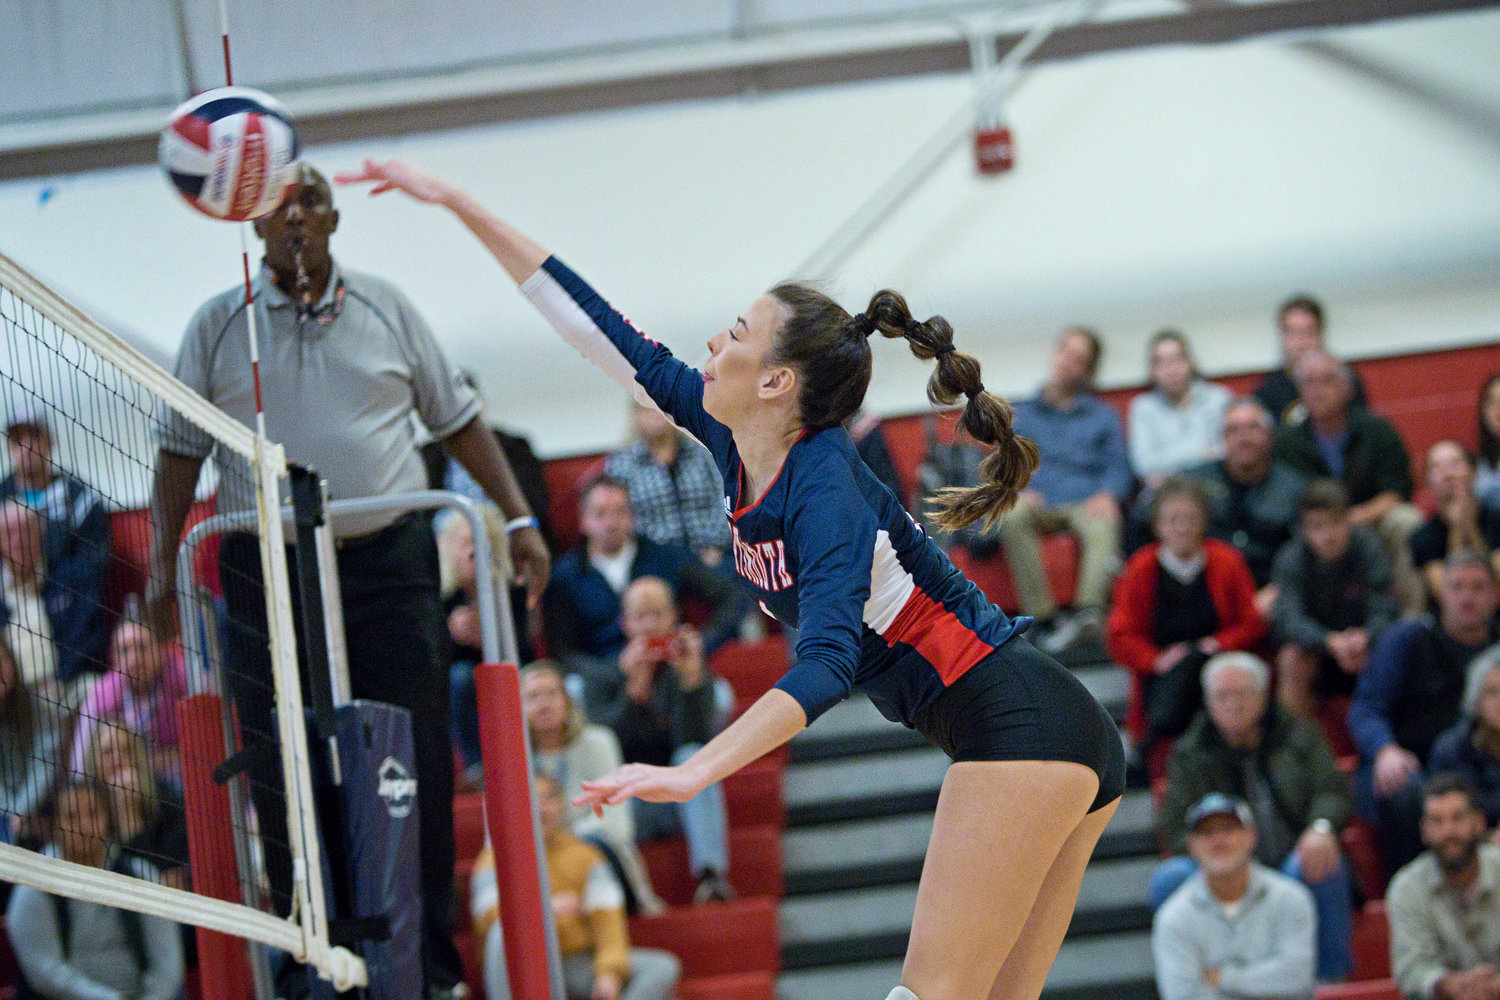 Morgan Shablom fires the ball over the net.